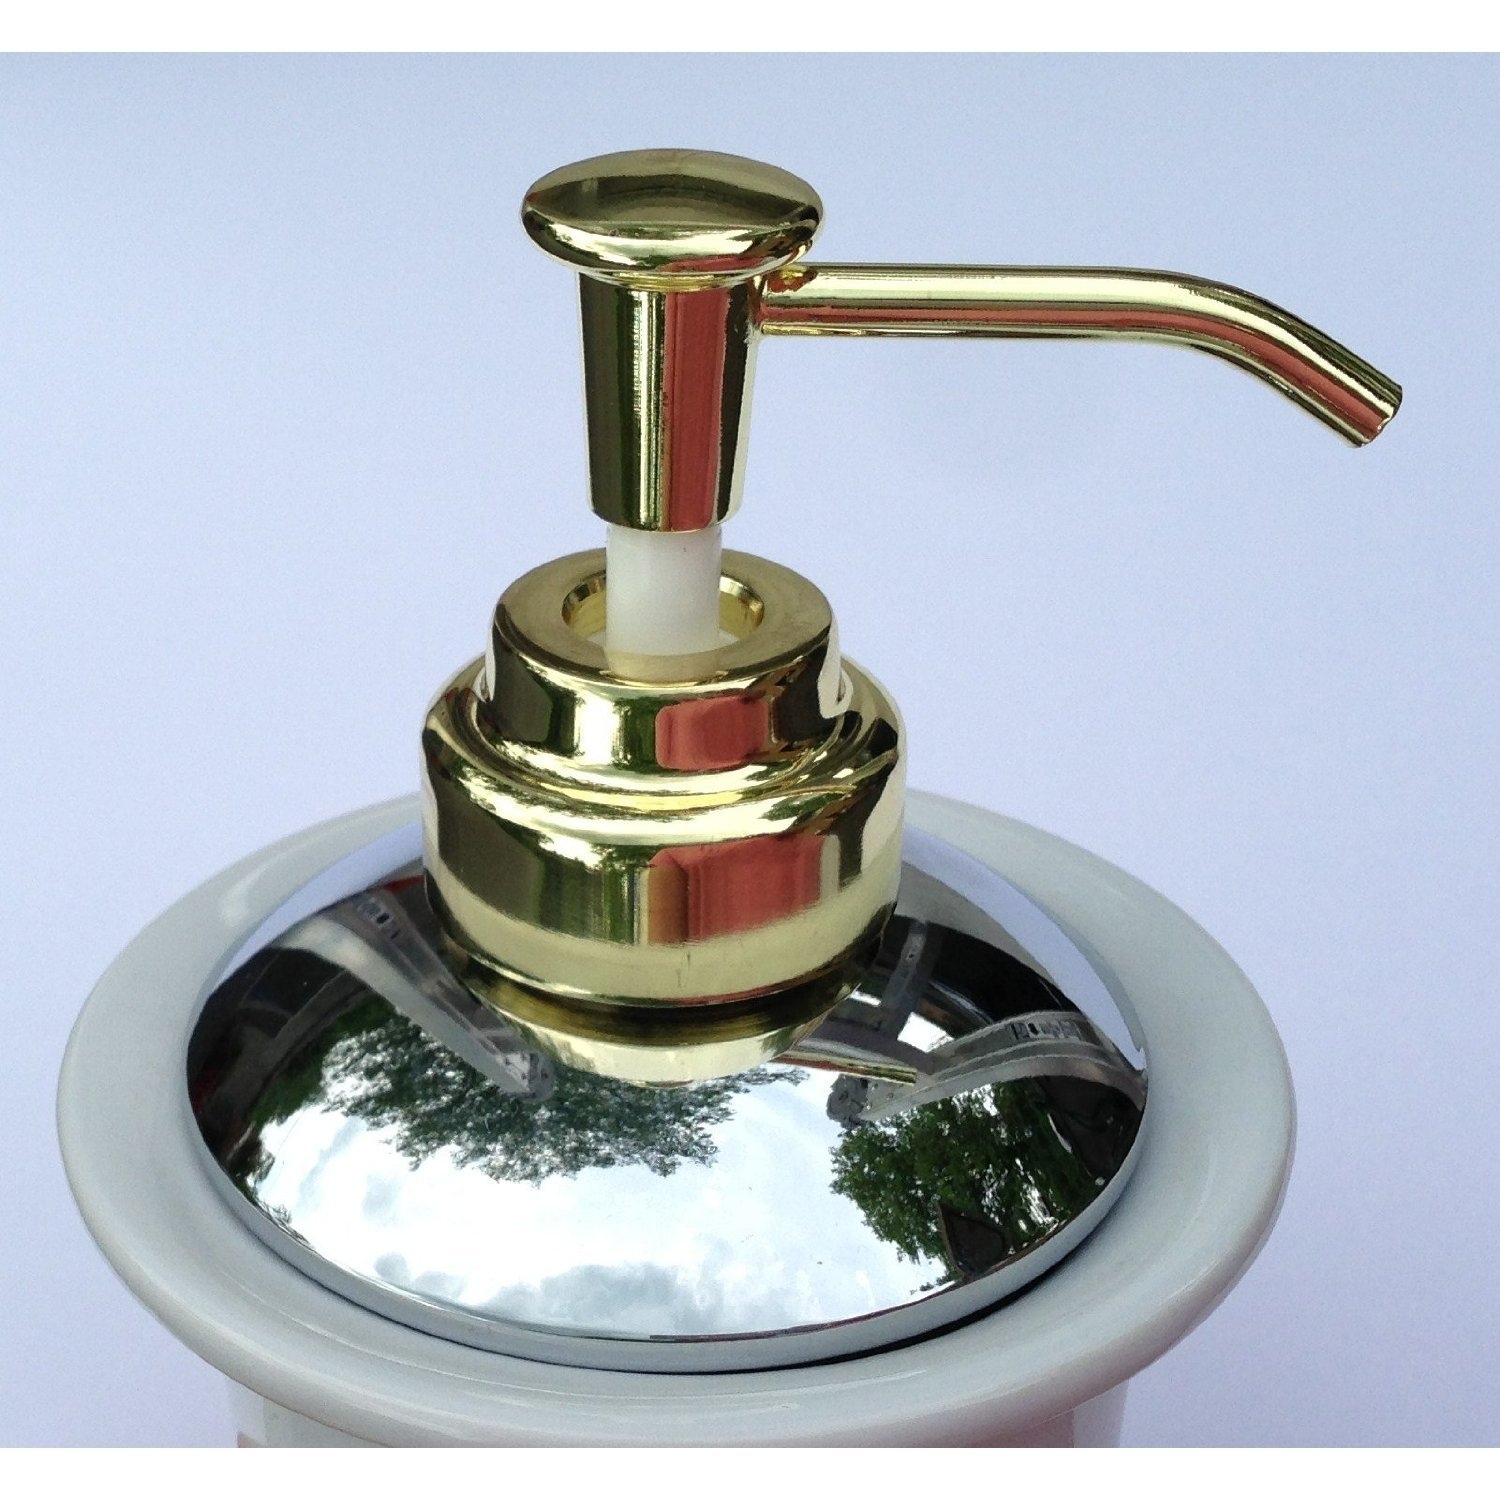 MOEN Wall Mounted KINGSLEY POLISHED CHROME & POLISHED BRASS Liquid Hand Soap or Lotion Dispenser by Soap Dispenser